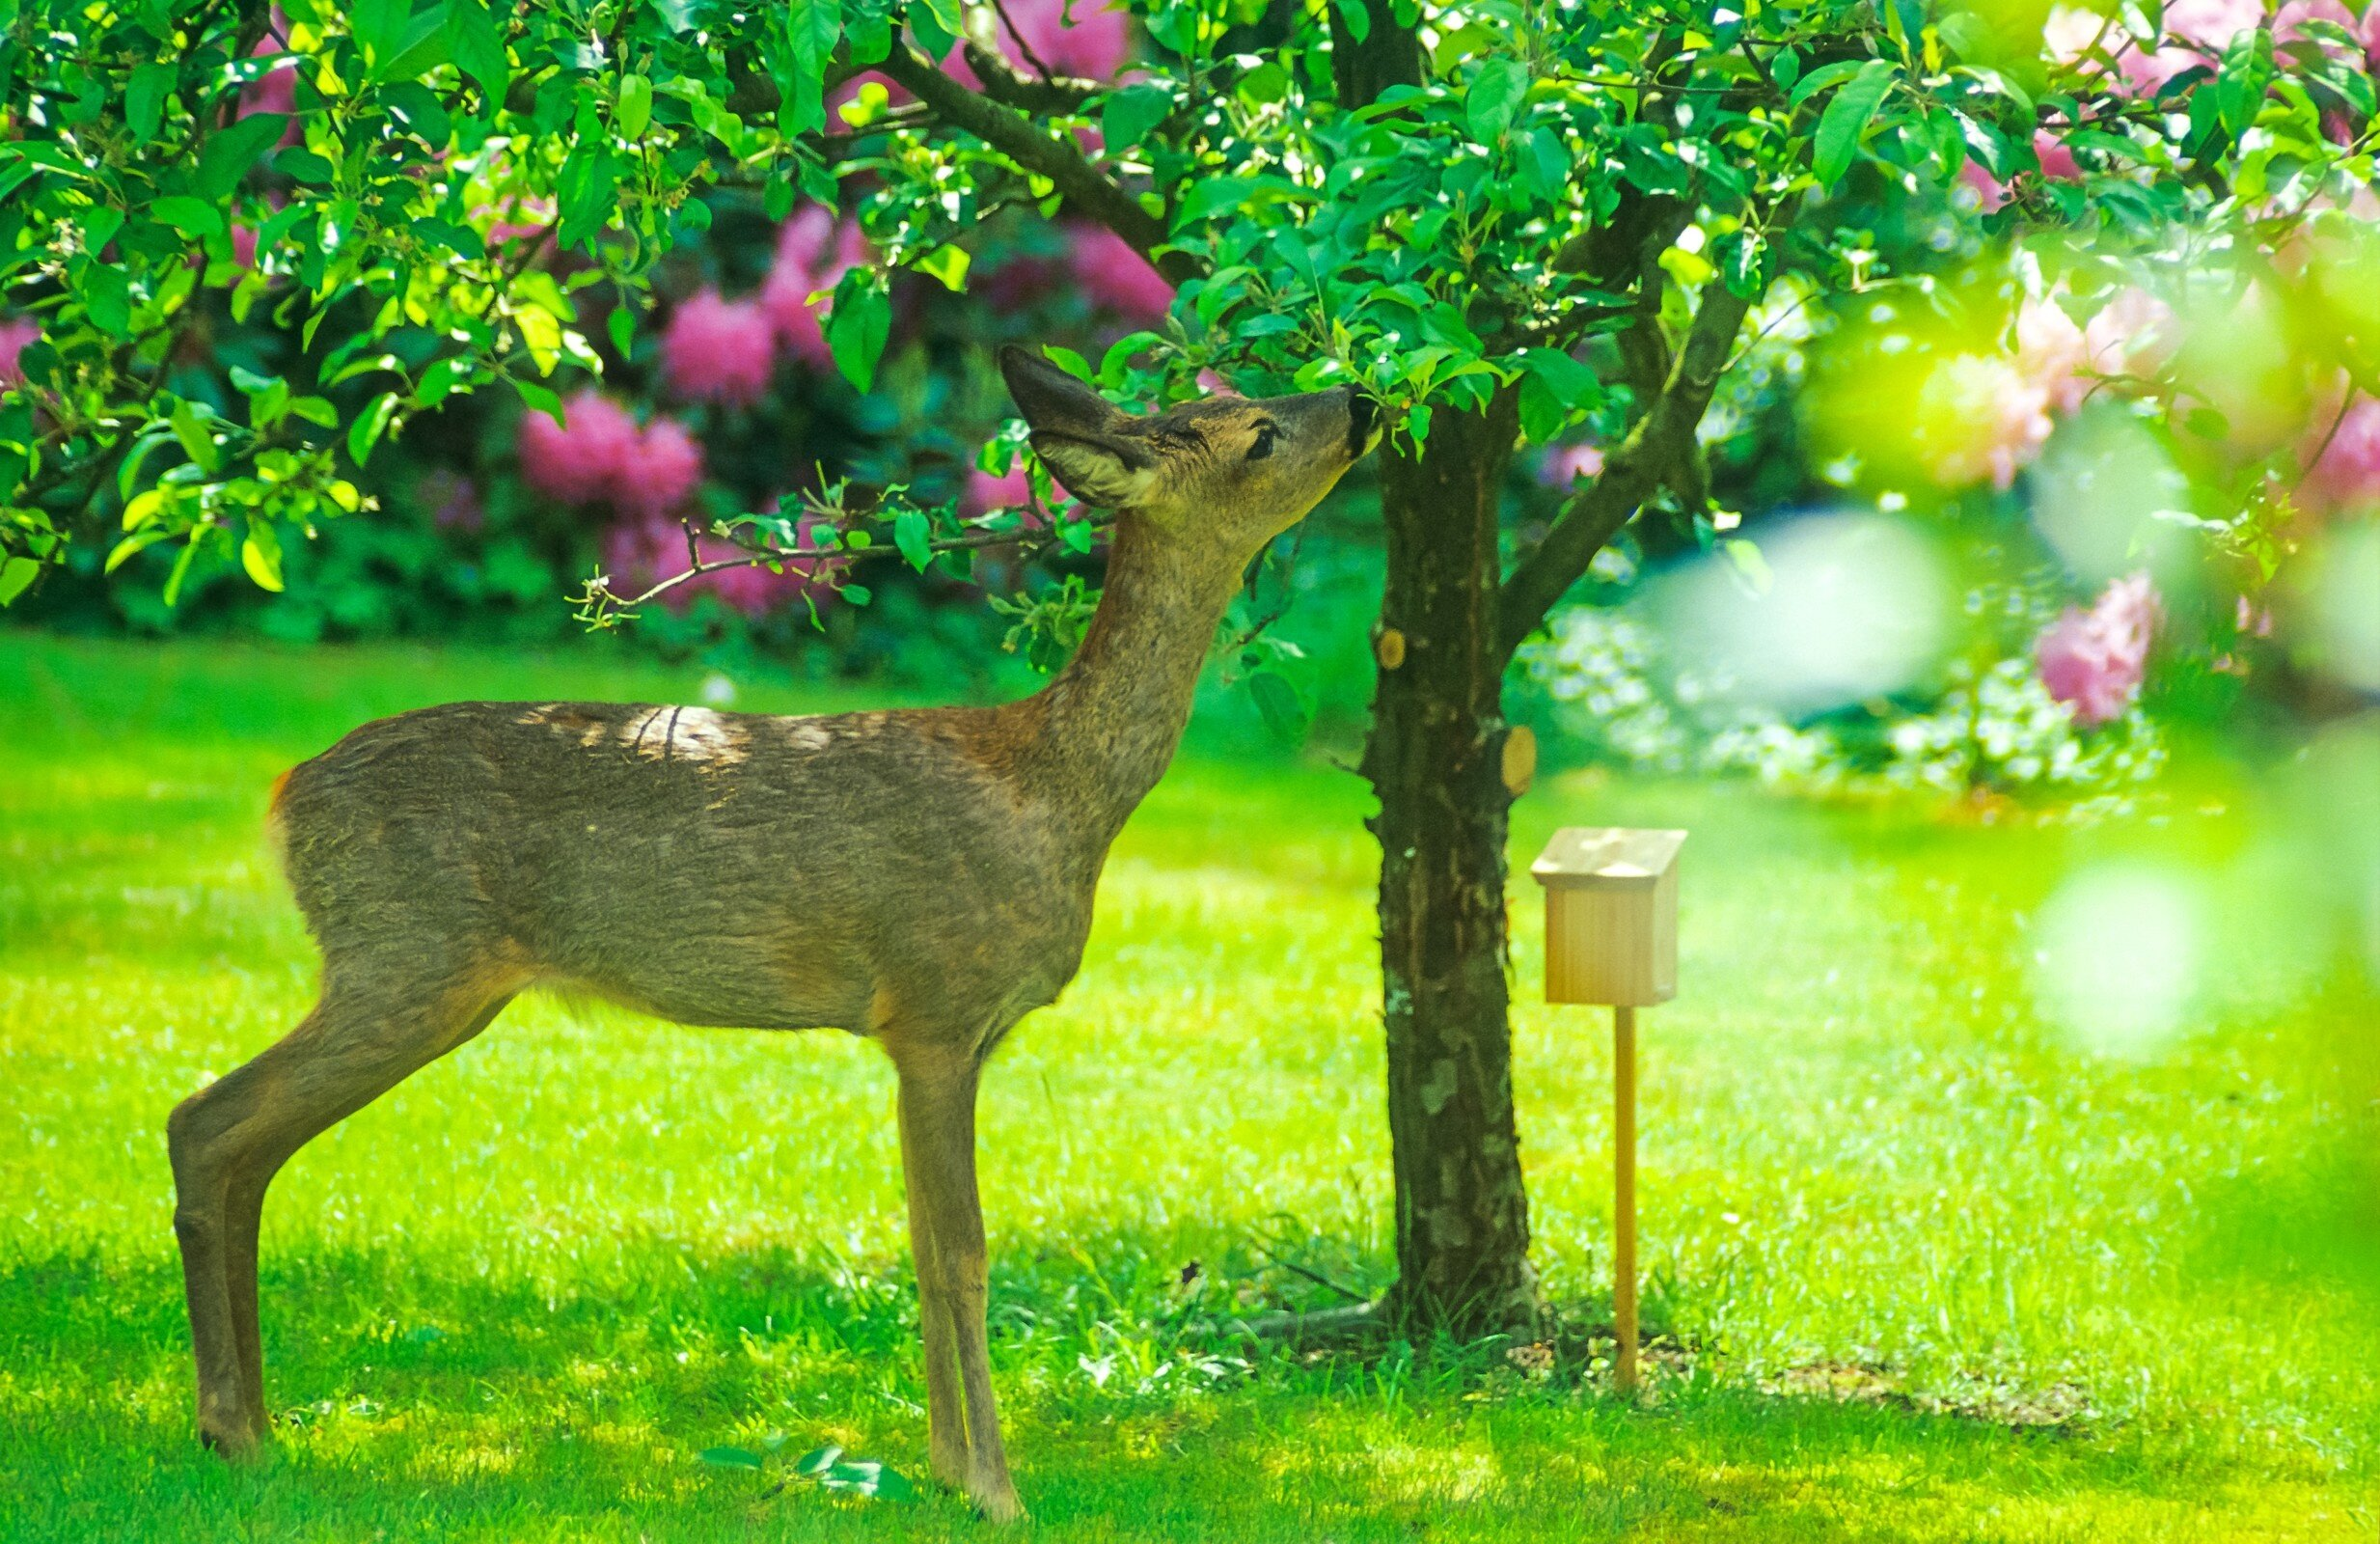 Lawn Treatment Options to Keep Common Pests Away in Poughkeepsie, NY